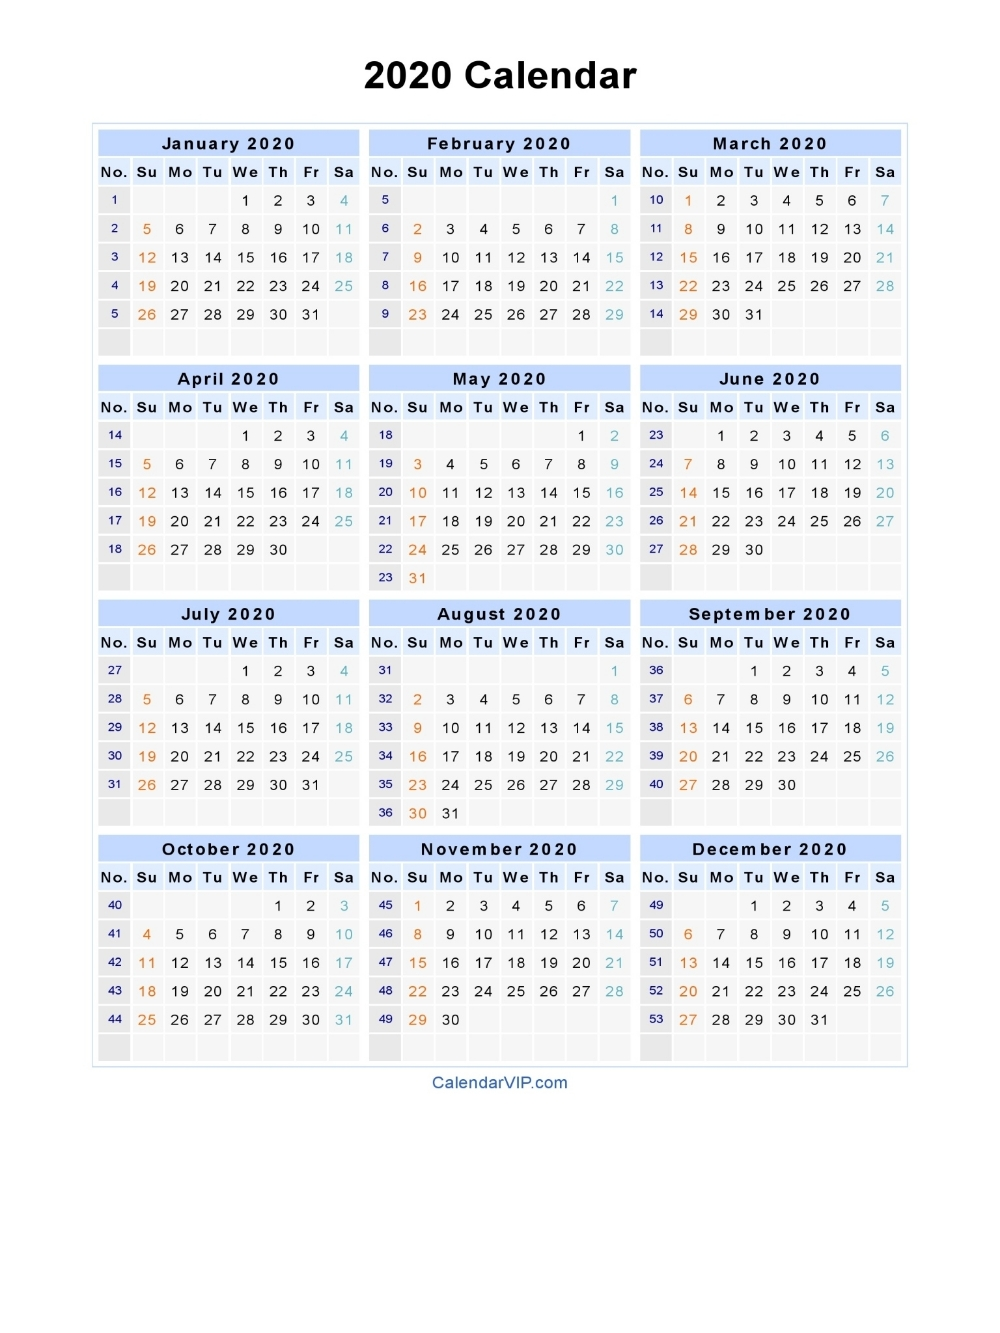 2020 Calendar - Blank Printable Calendar Template In Pdf inside Calendar With Week Numbers 2019/2020